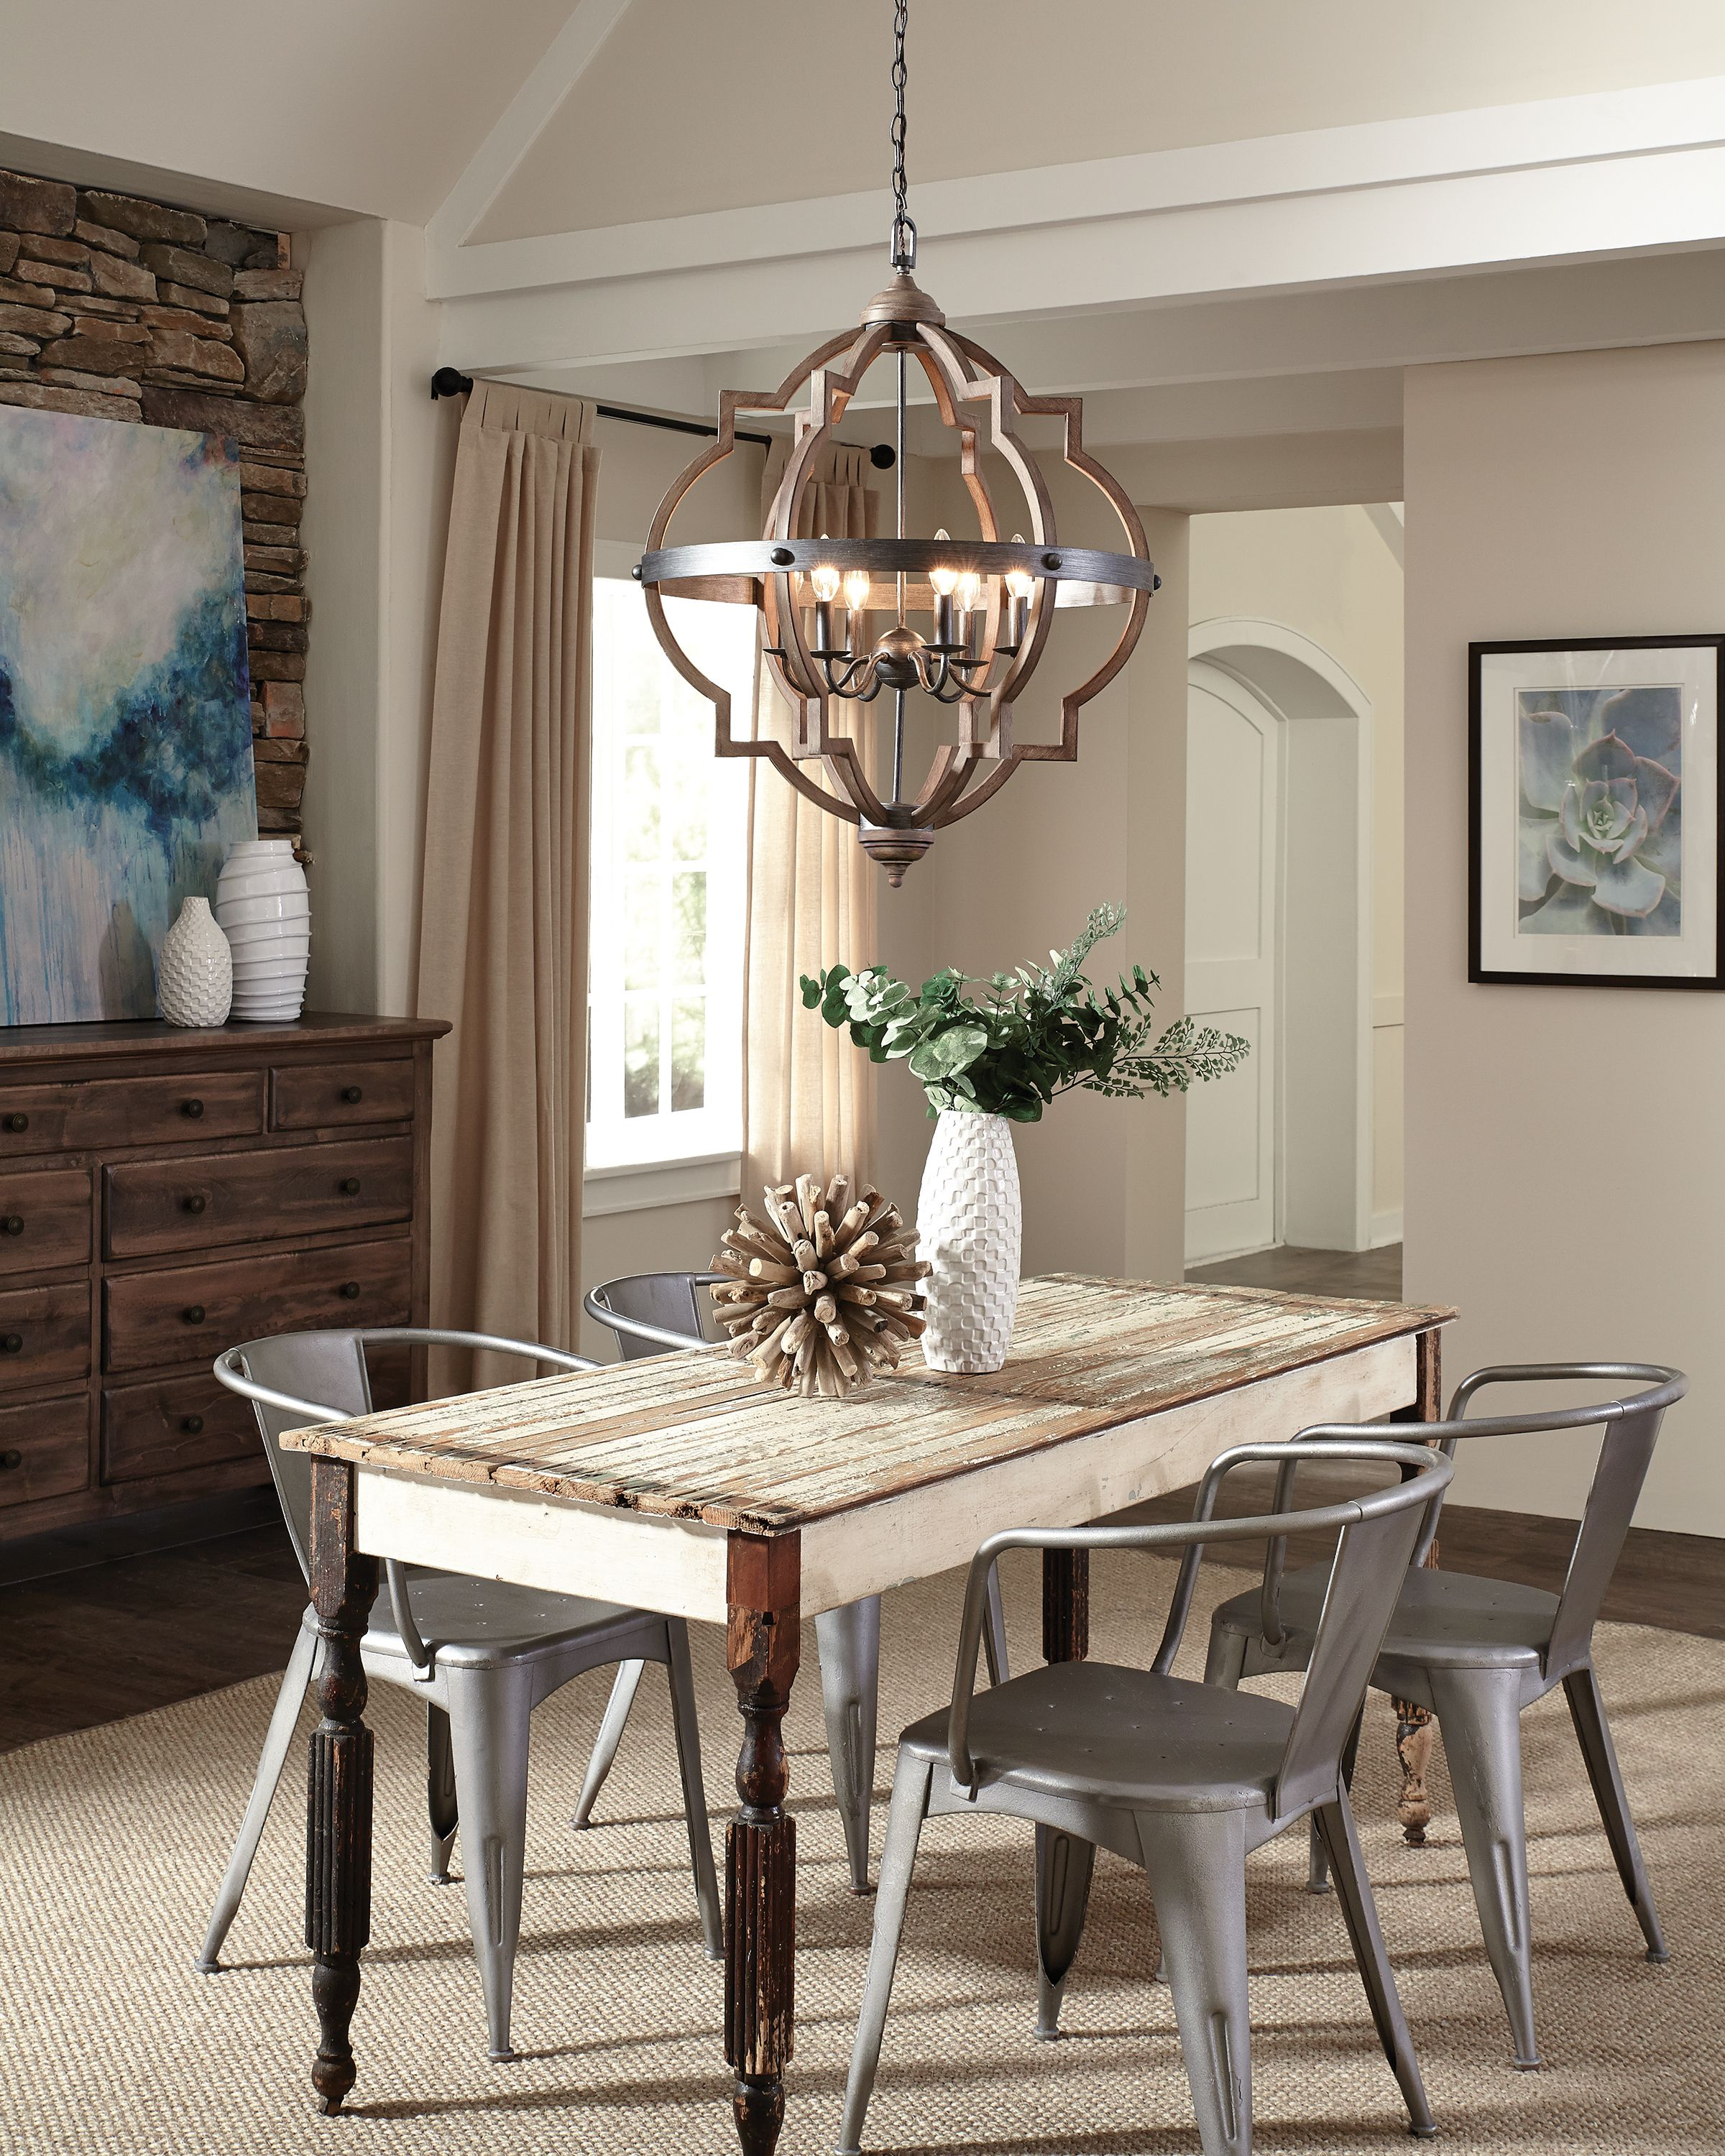 Wood and Metal element make this dining space complete. Find this lighting  fixture at https